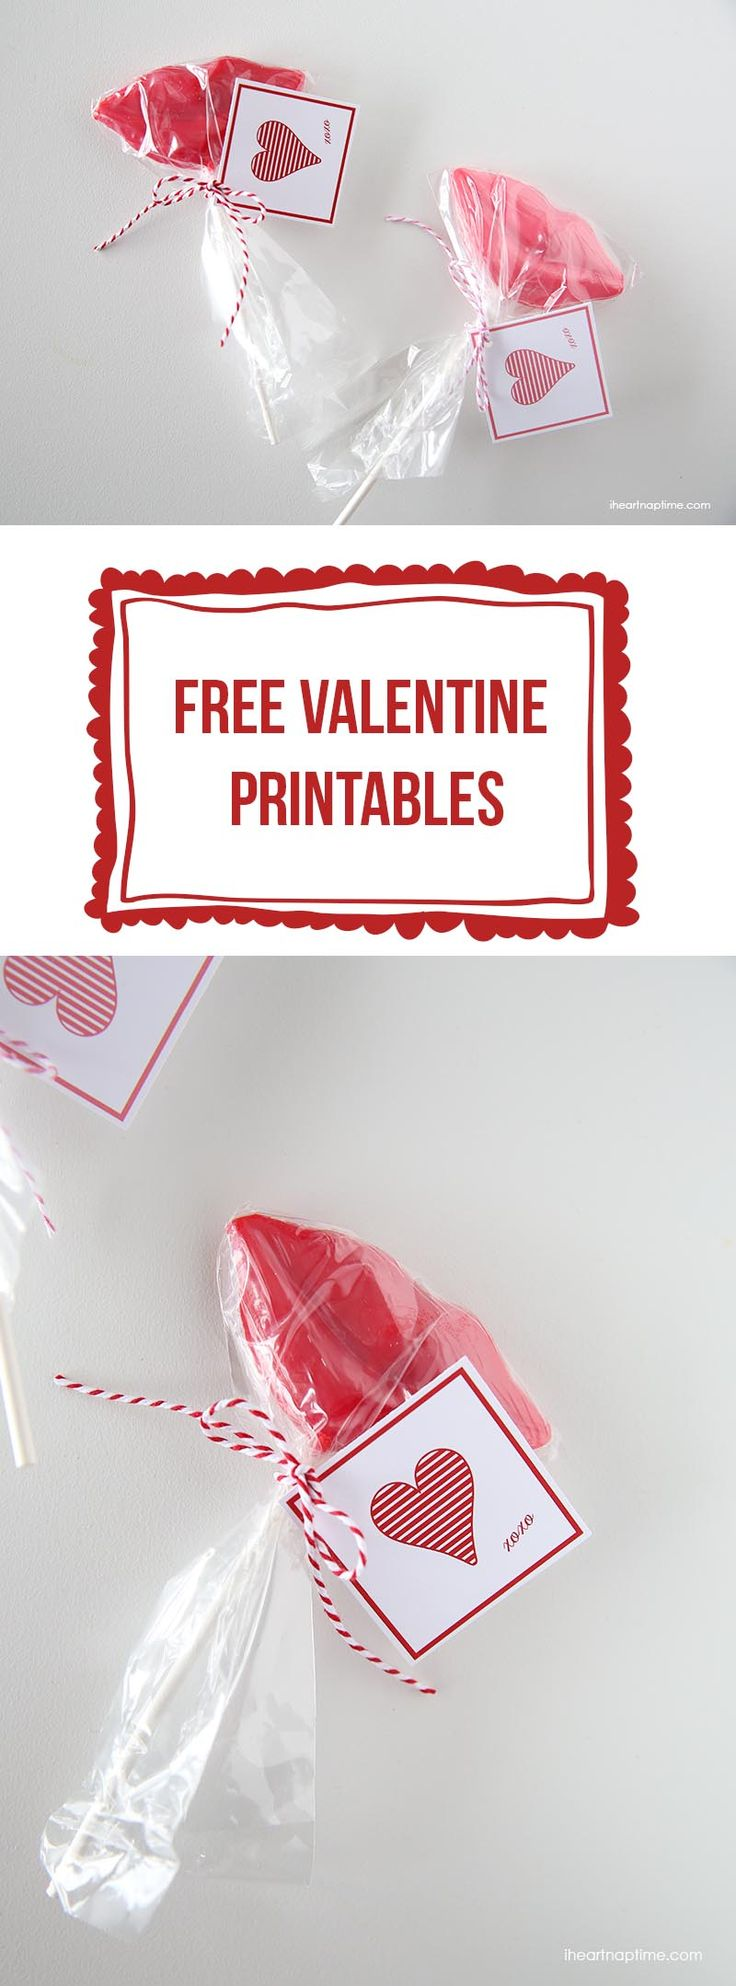 398 best Valentine's Day Gifts images on Pinterest | Kids ...